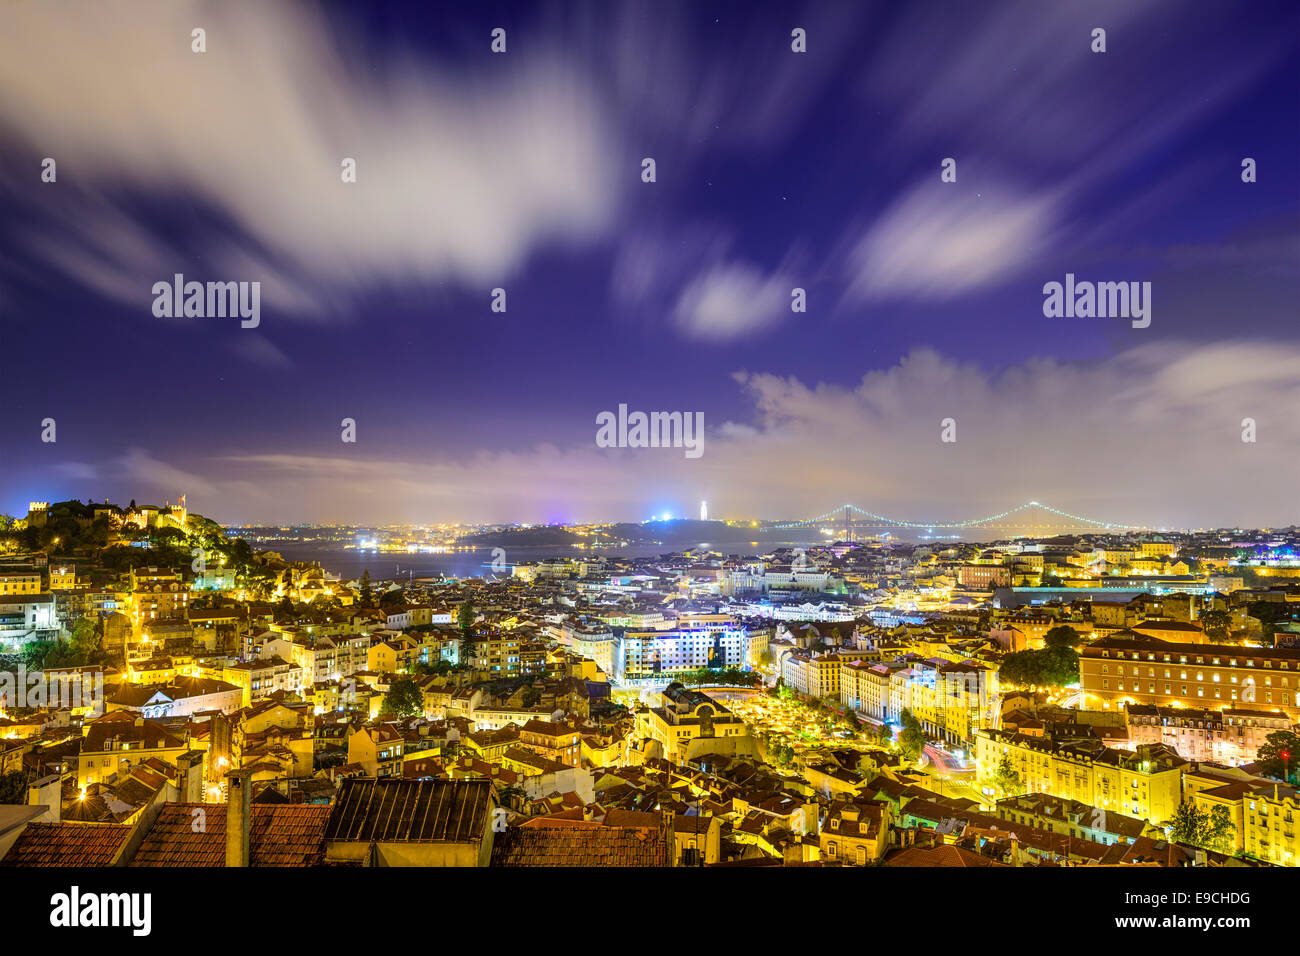 Lisbon, Portugal skyline at night. Stock Photo